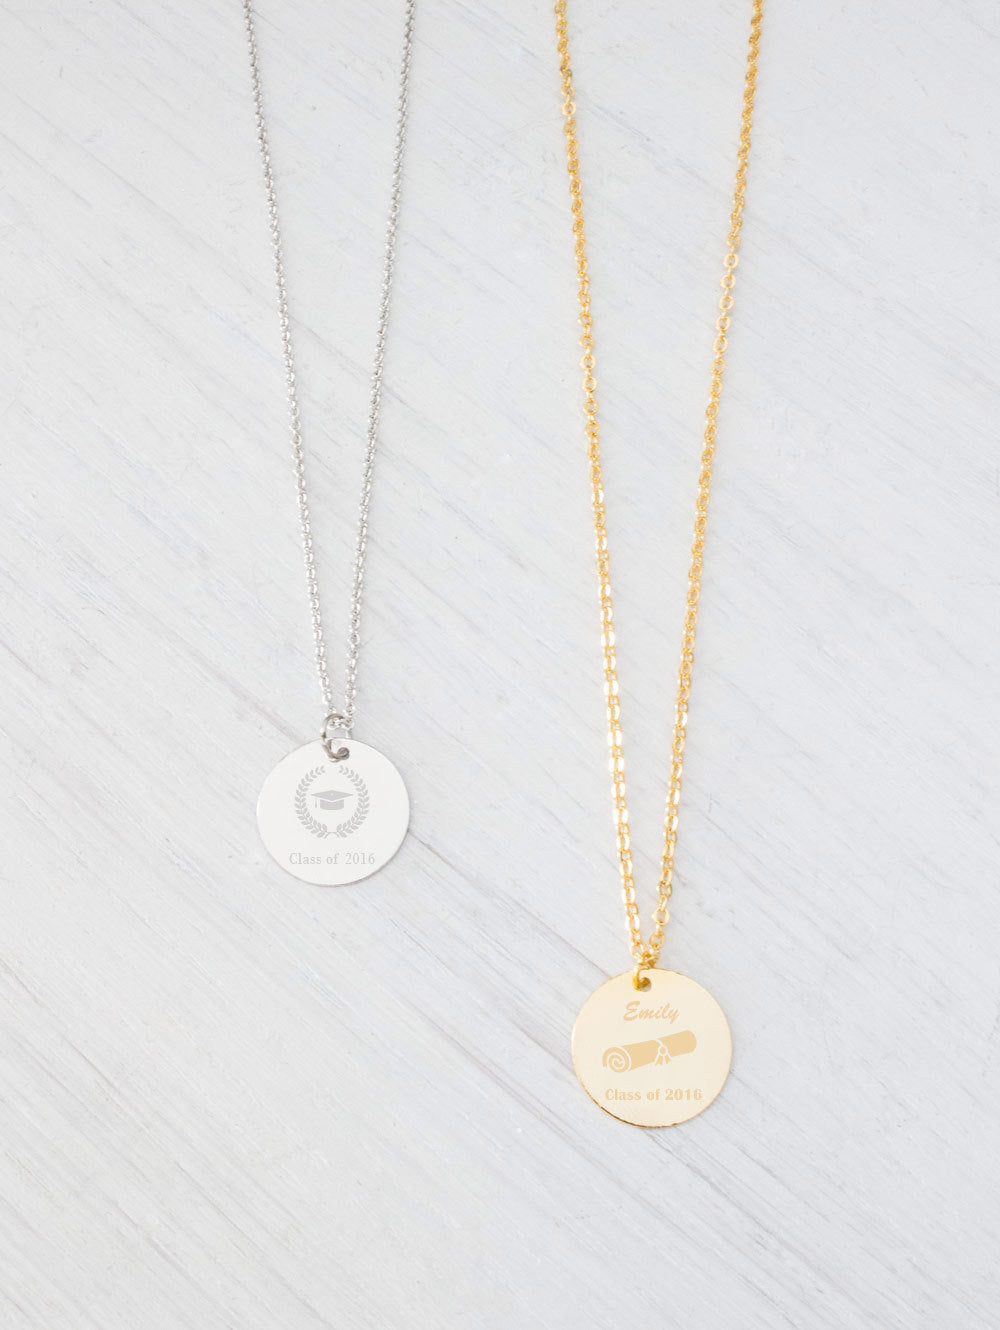 Personalized Gold Necklace, Monogram Initial Name Engraved Necklace, Silver Necklace, Medal Necklace, Christmas, wedding, bridesmaids Gifts - product_type] - Beautiz